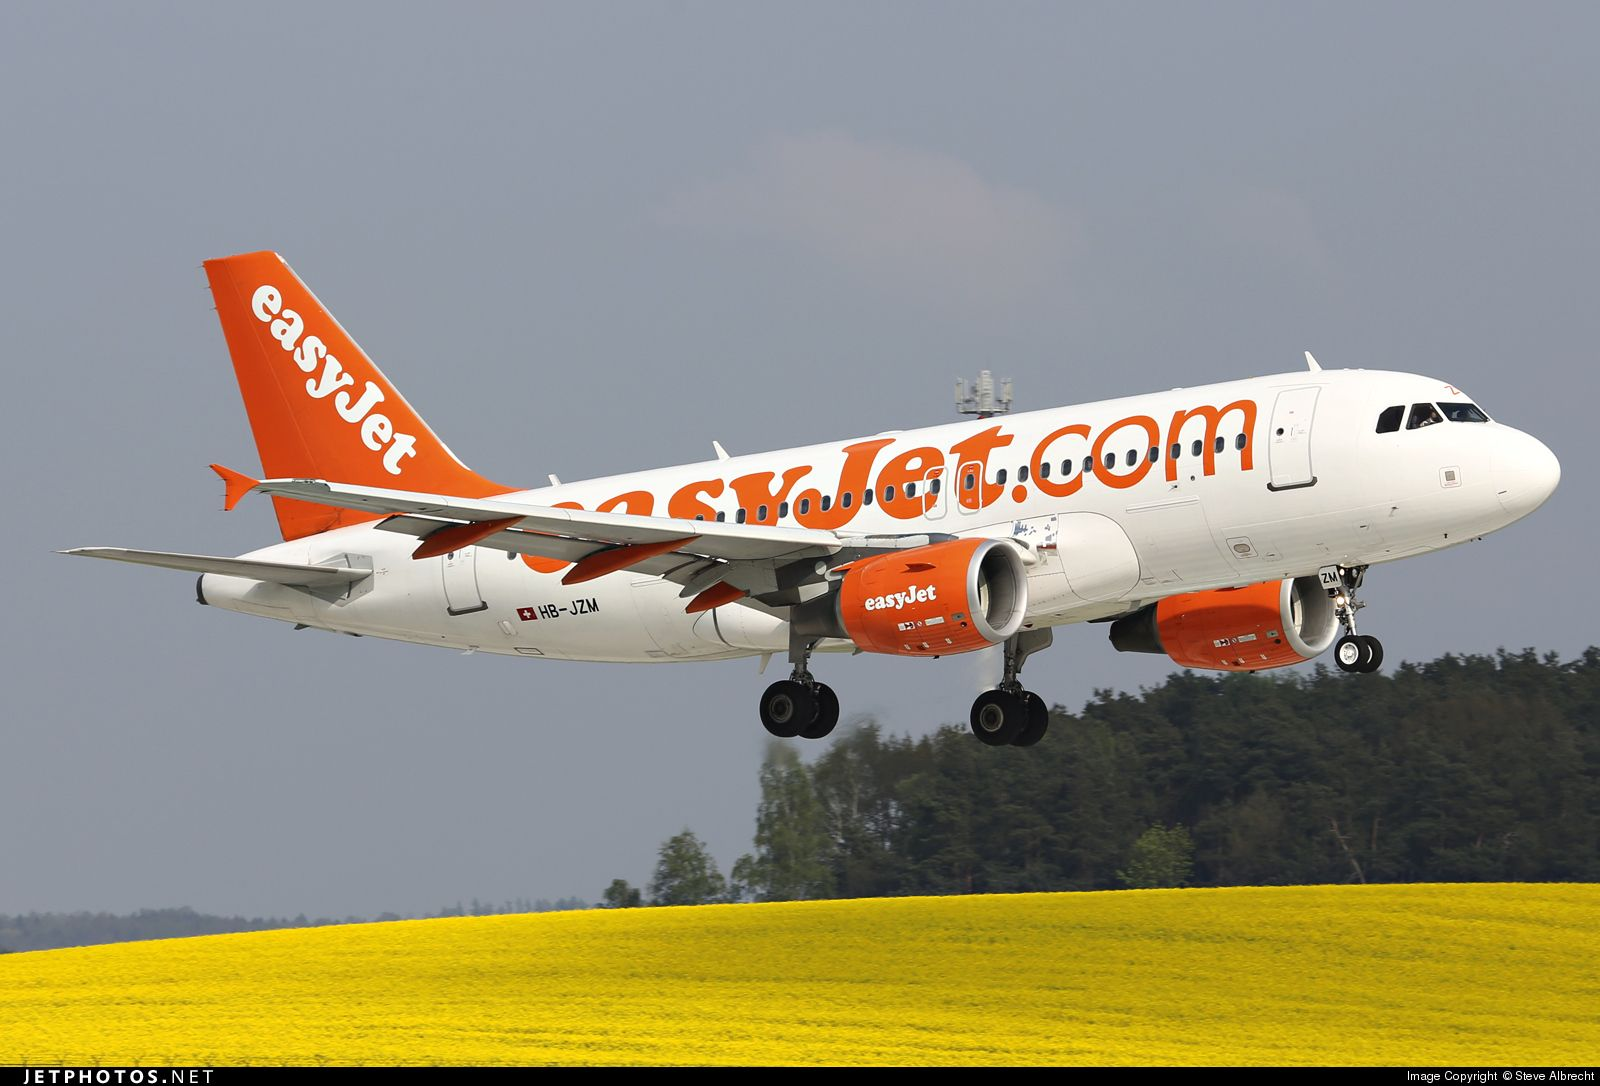 High quality photo of HB-JZM (CN: 2370) easyJet Switzerland Airbus A319-111 by Steve Albrecht